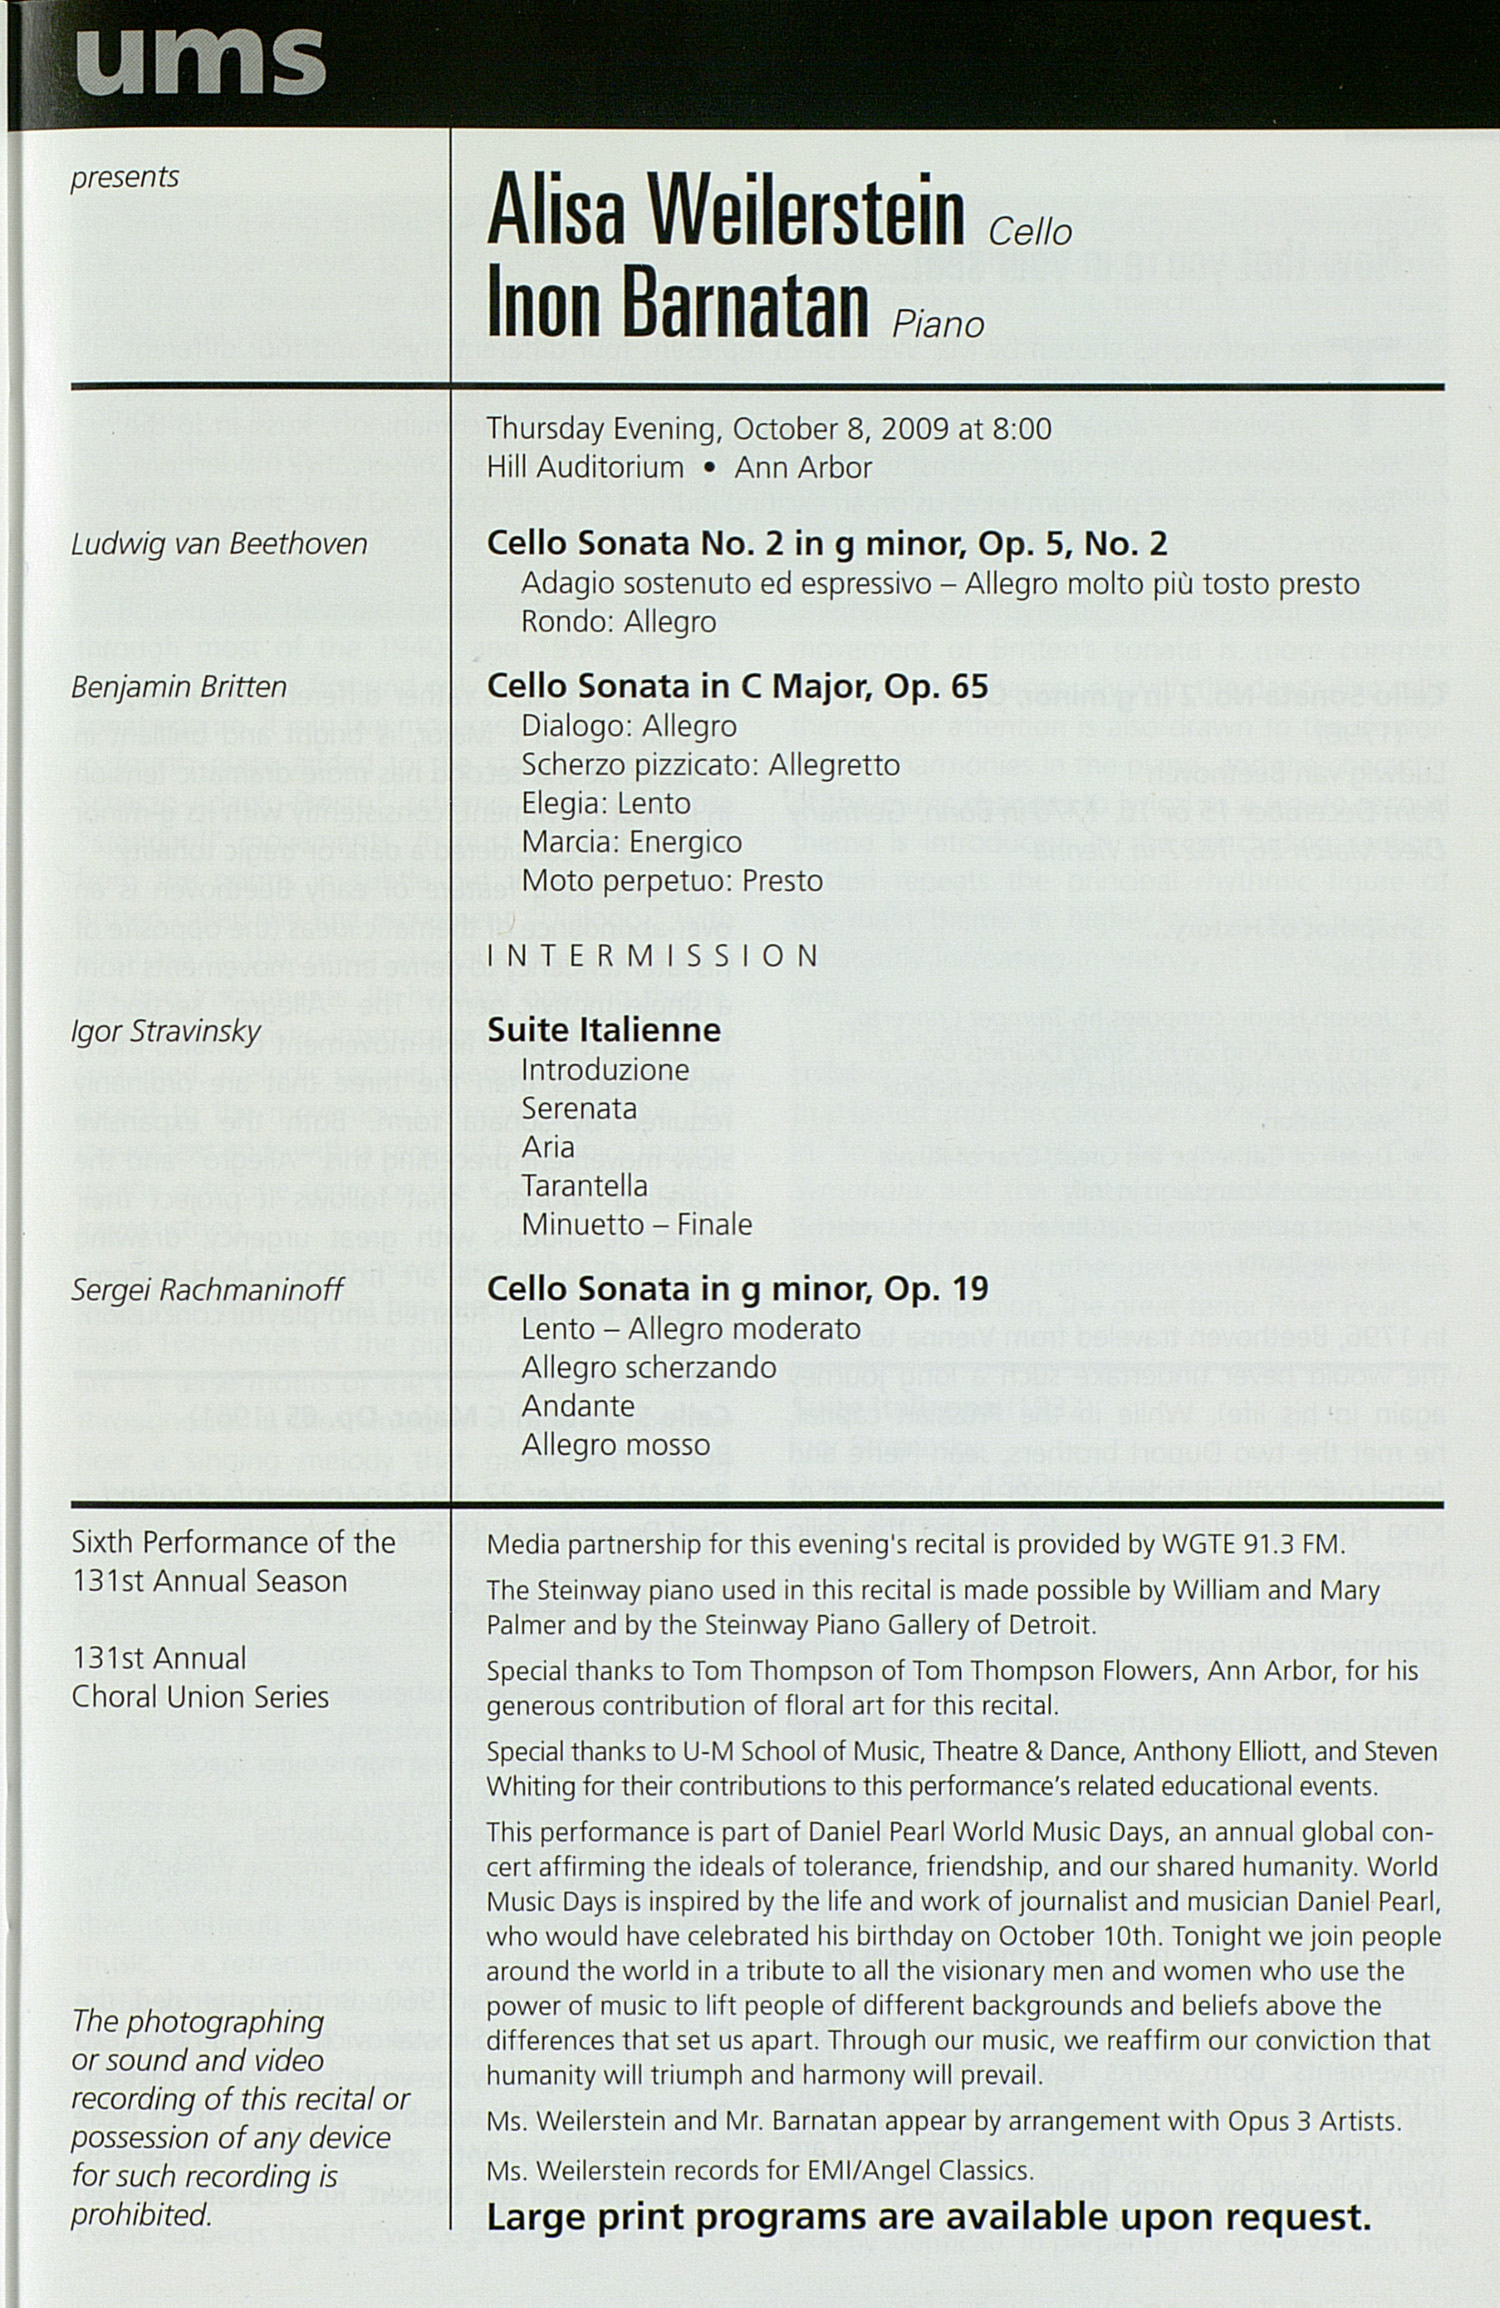 UMS Concert Program, Sunday Sep. 13 To Oct. 08: University Musical Society: Fall 2009 - Sunday Sep. 13 To Oct. 08 --  image